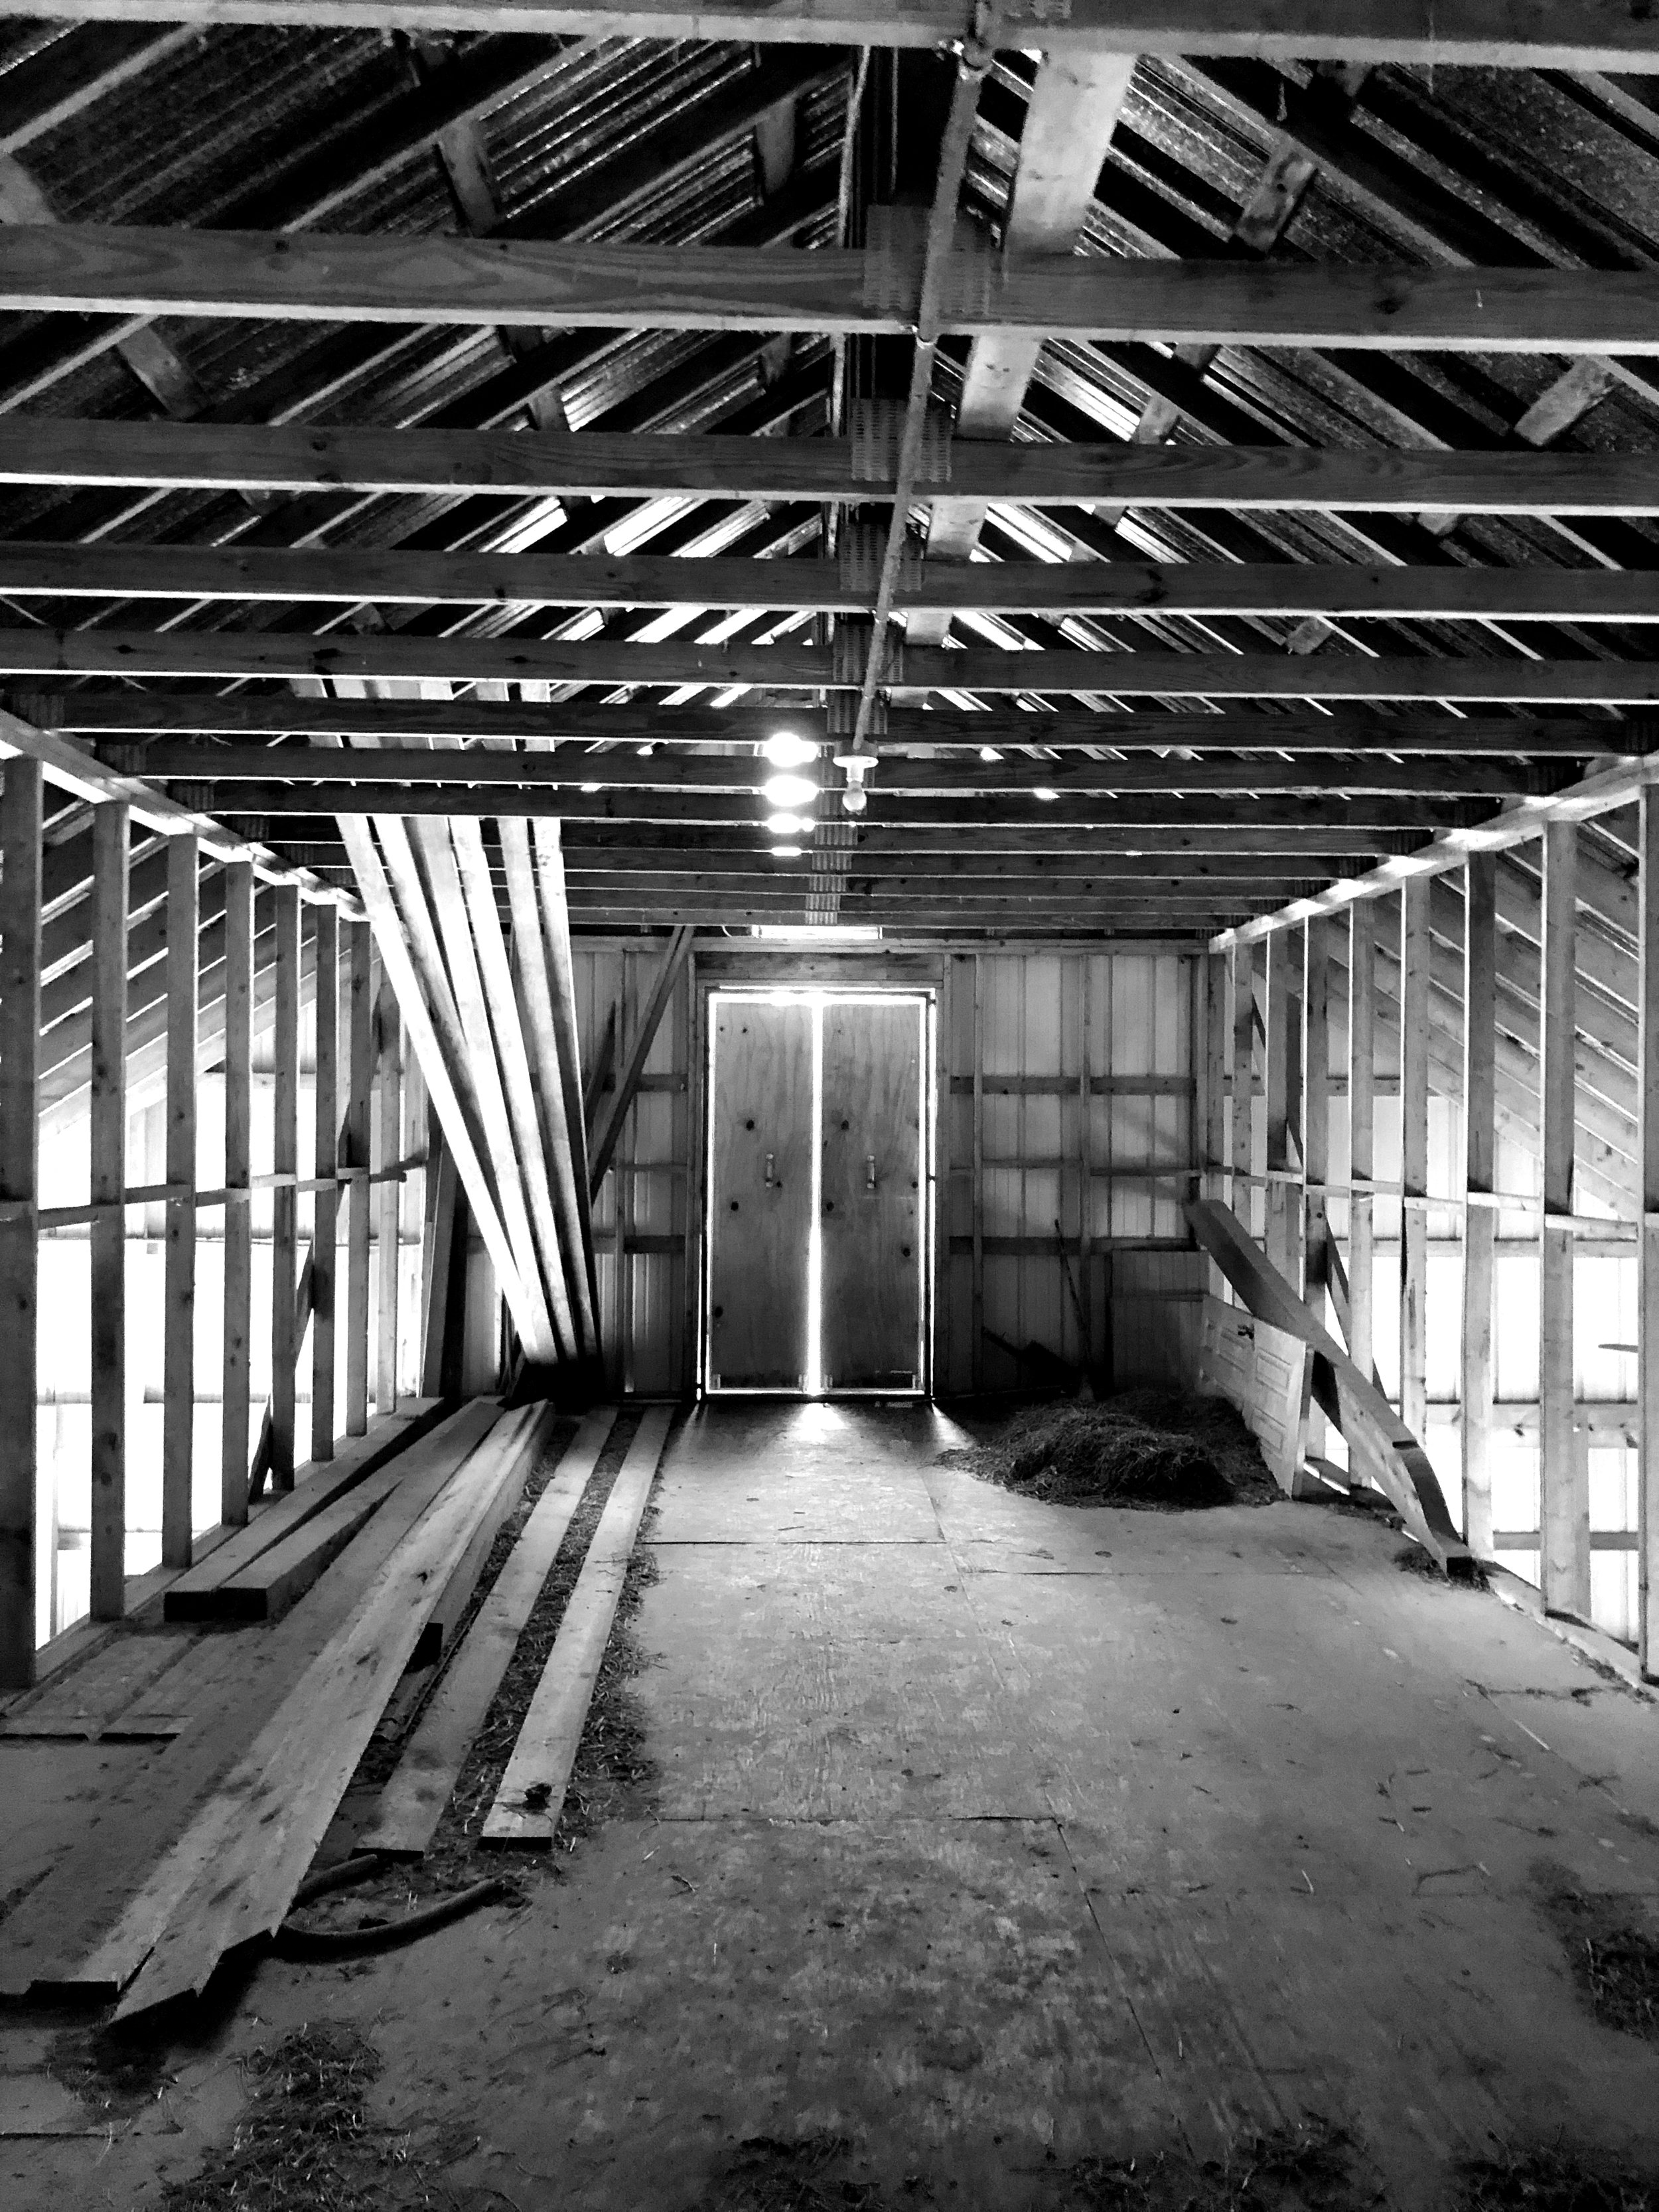 EXISTING BARN STRUCTURE